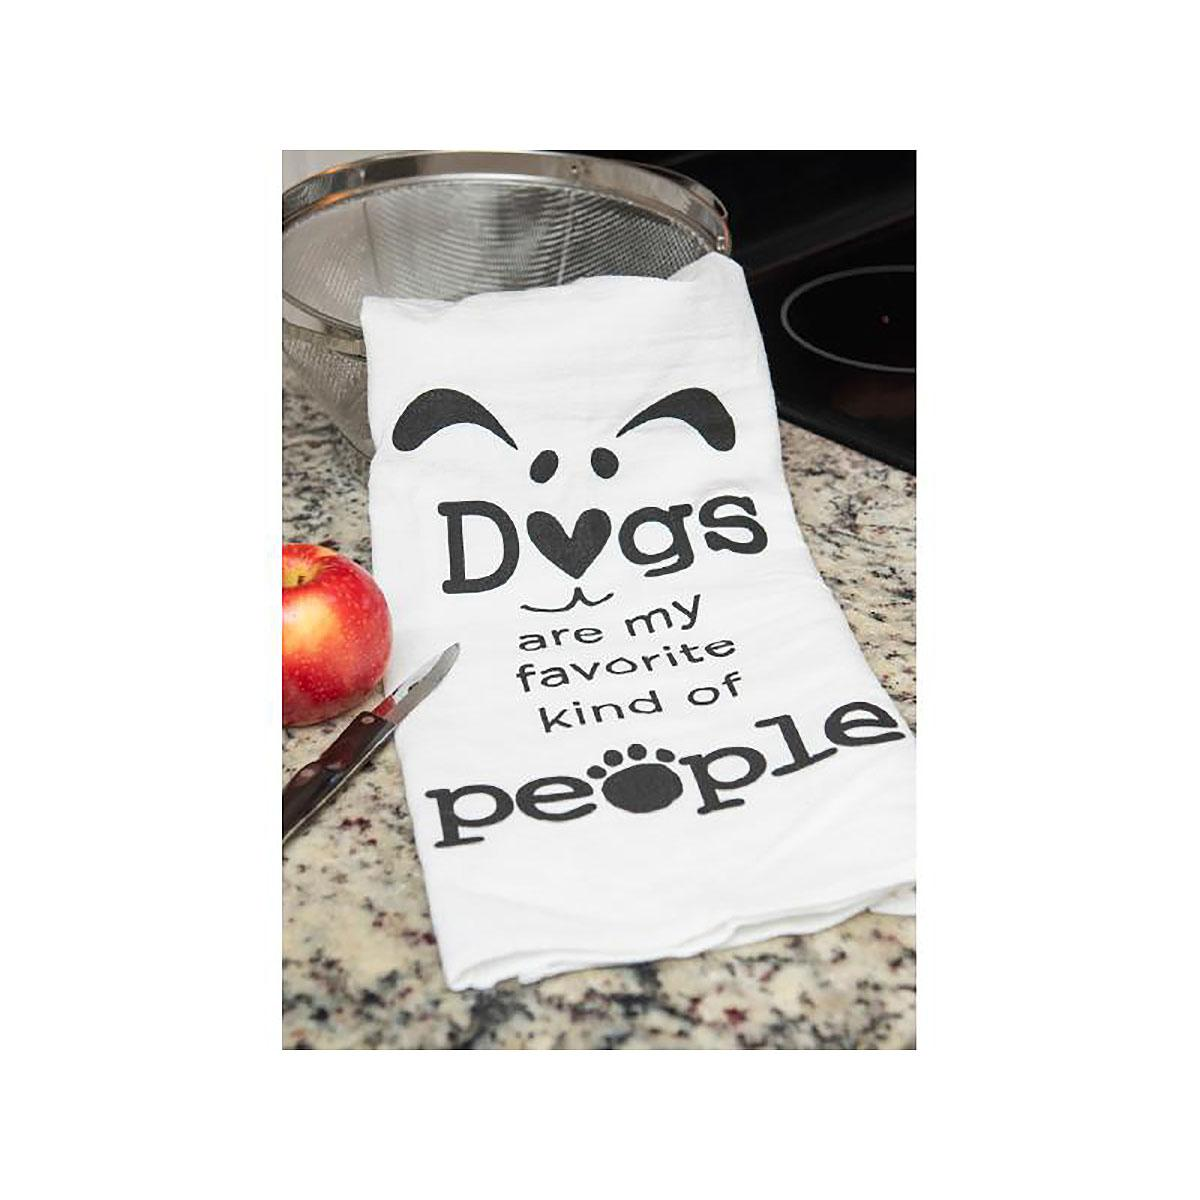 Dogs Are My Favorite Kind Of People Kitchen Towel by Dog Speak